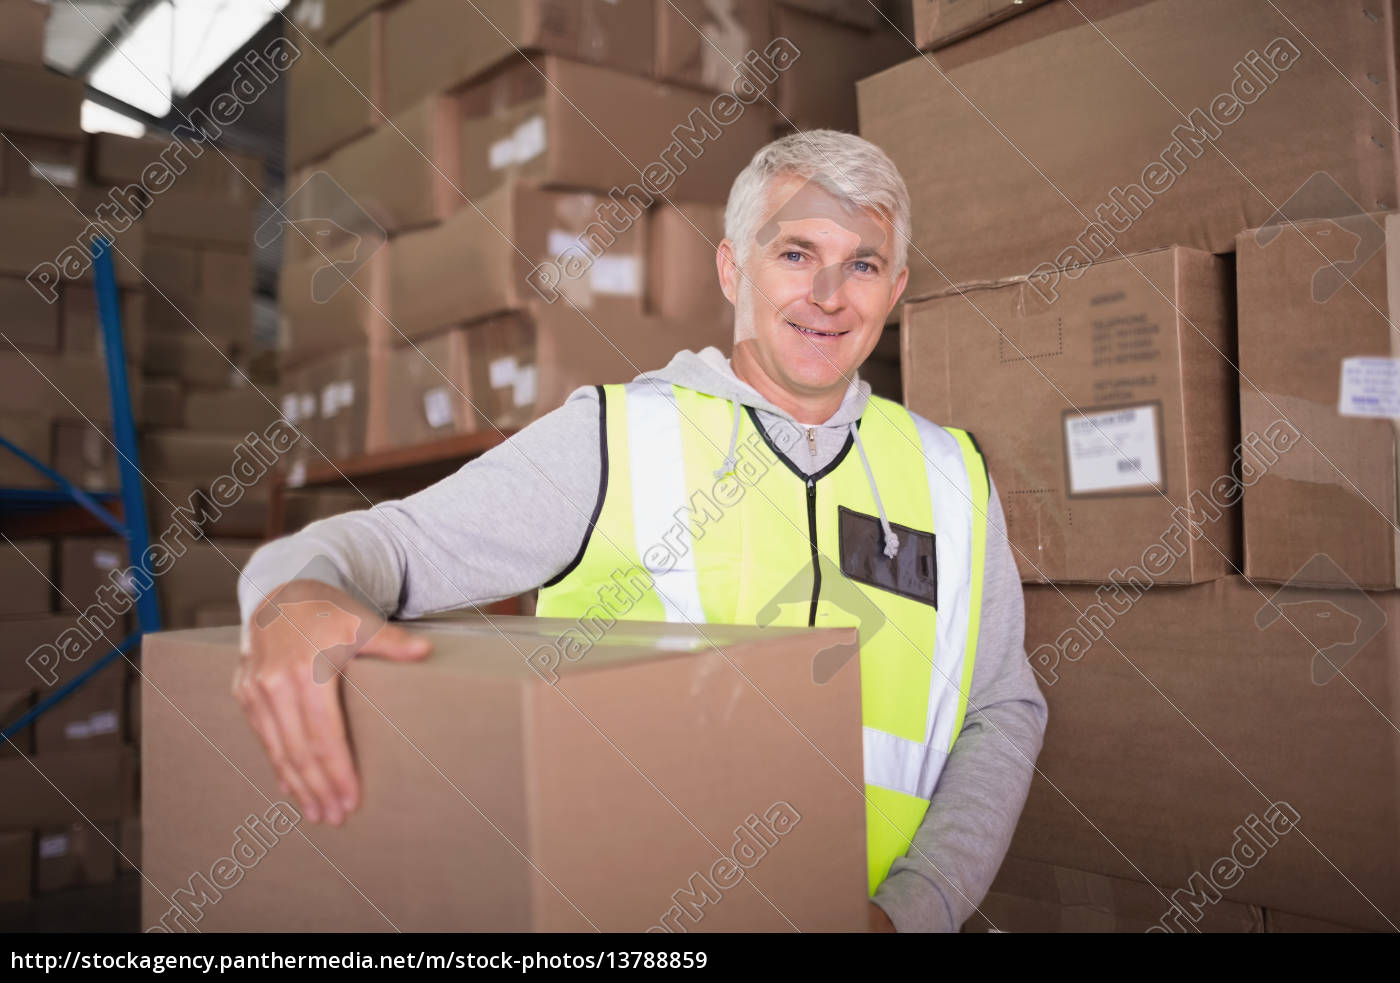 worker, carrying, box, in, warehouse - 13788859